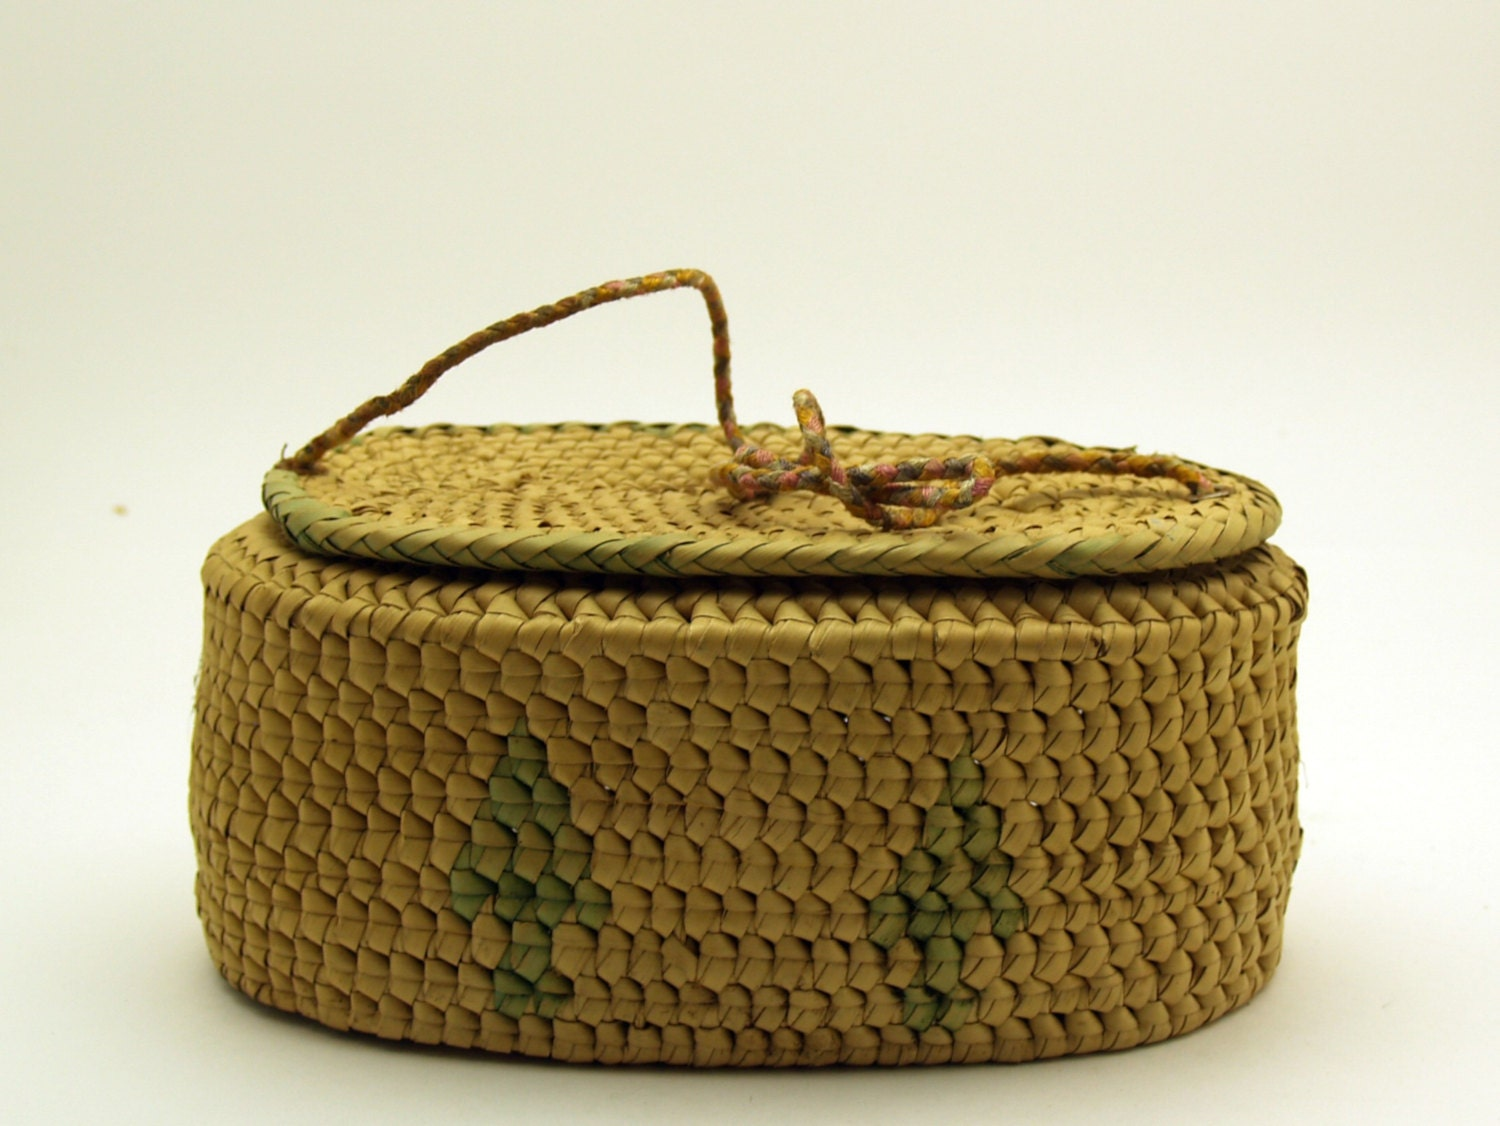 Woven Basket Purse : Vintage woven grass basket purse or sewing